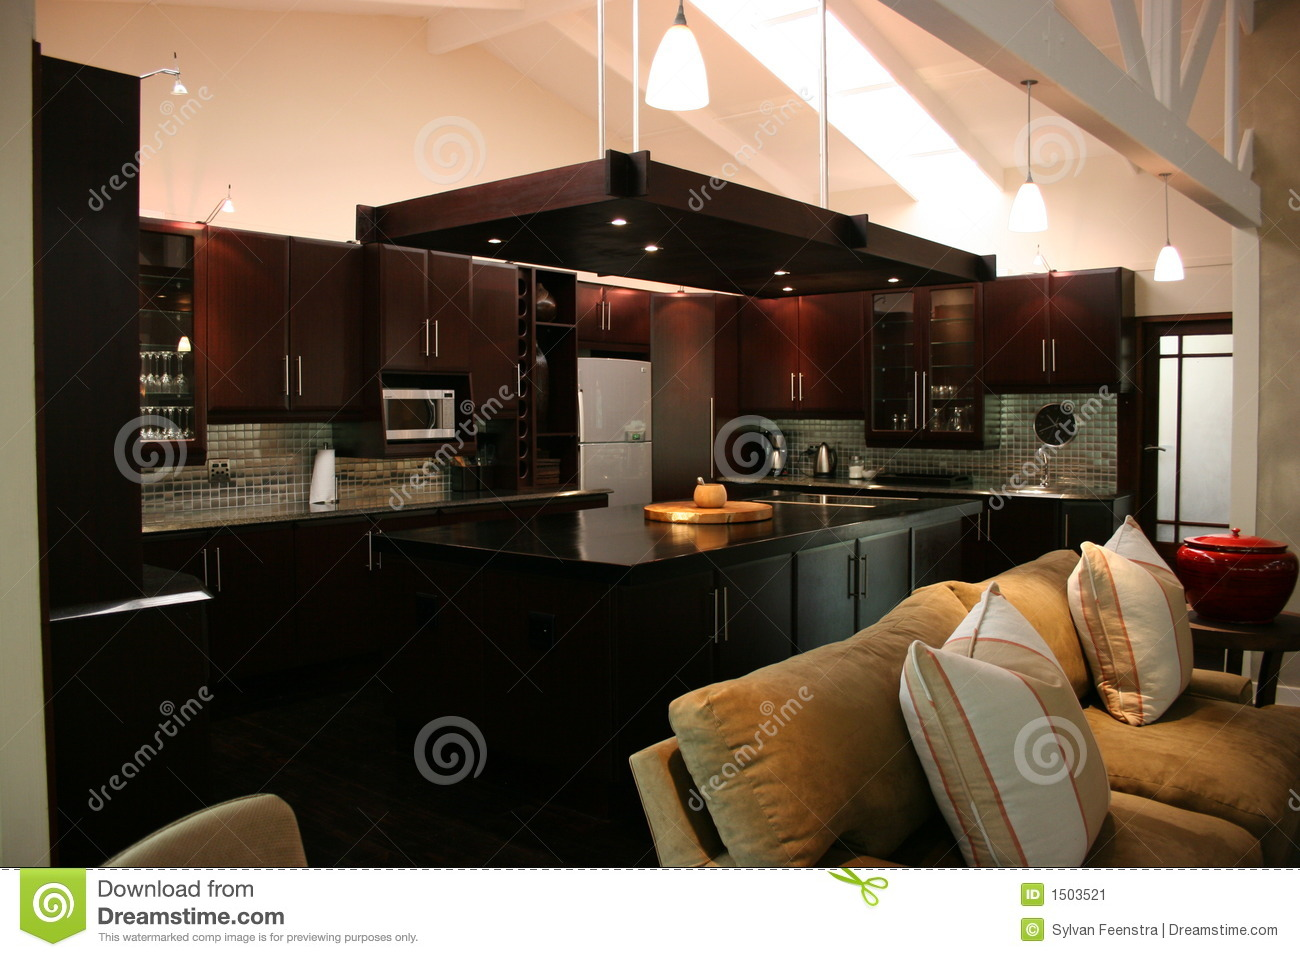 Modern African Interior Kitchen Stock Image Image Of Home Lodge 1503521